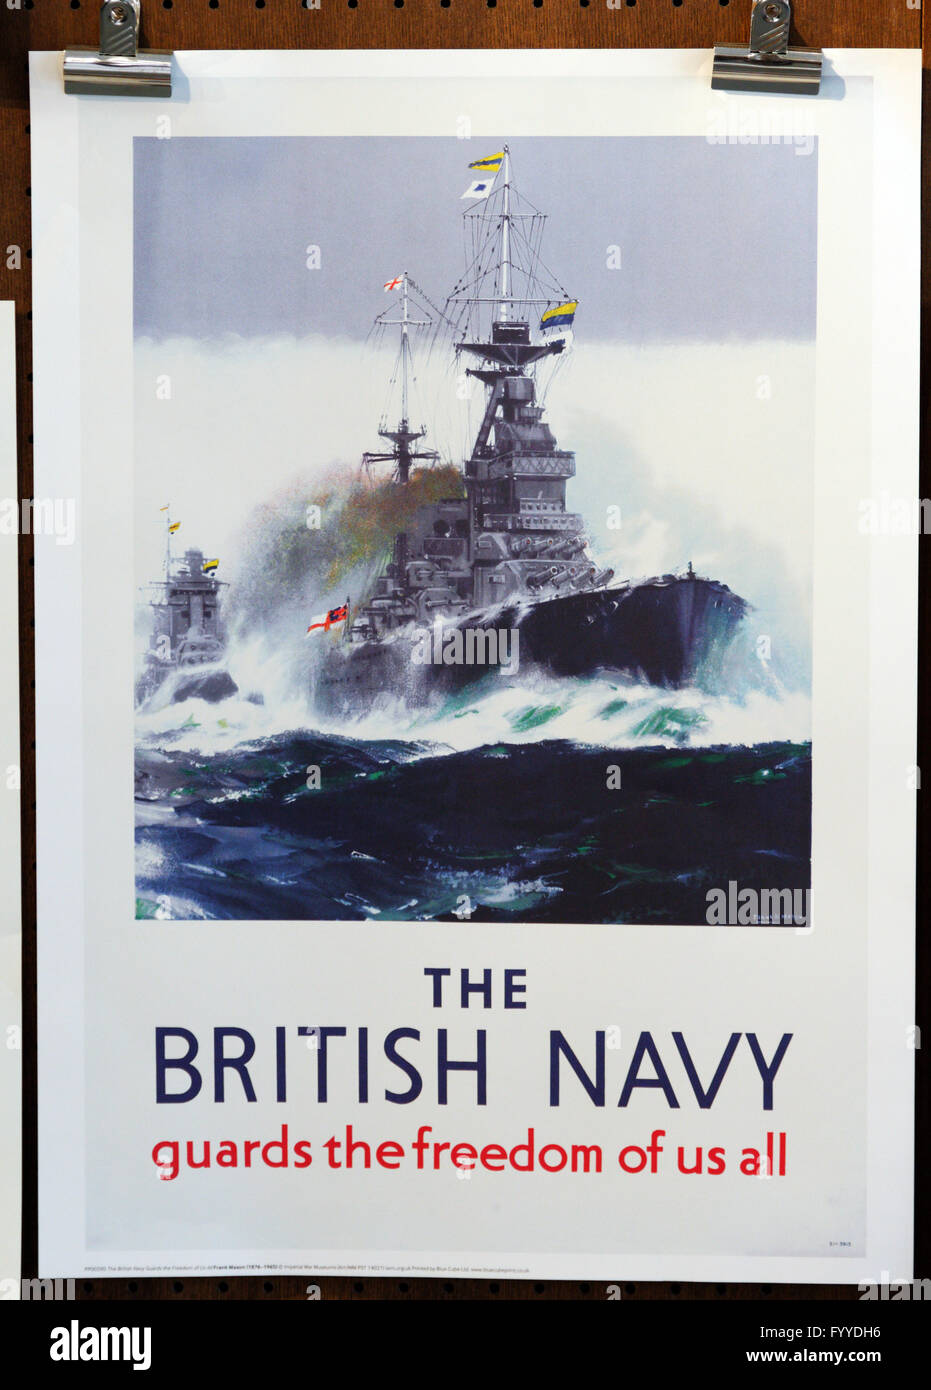 Royal British Navy Stock Photos & Royal British Navy Stock Images